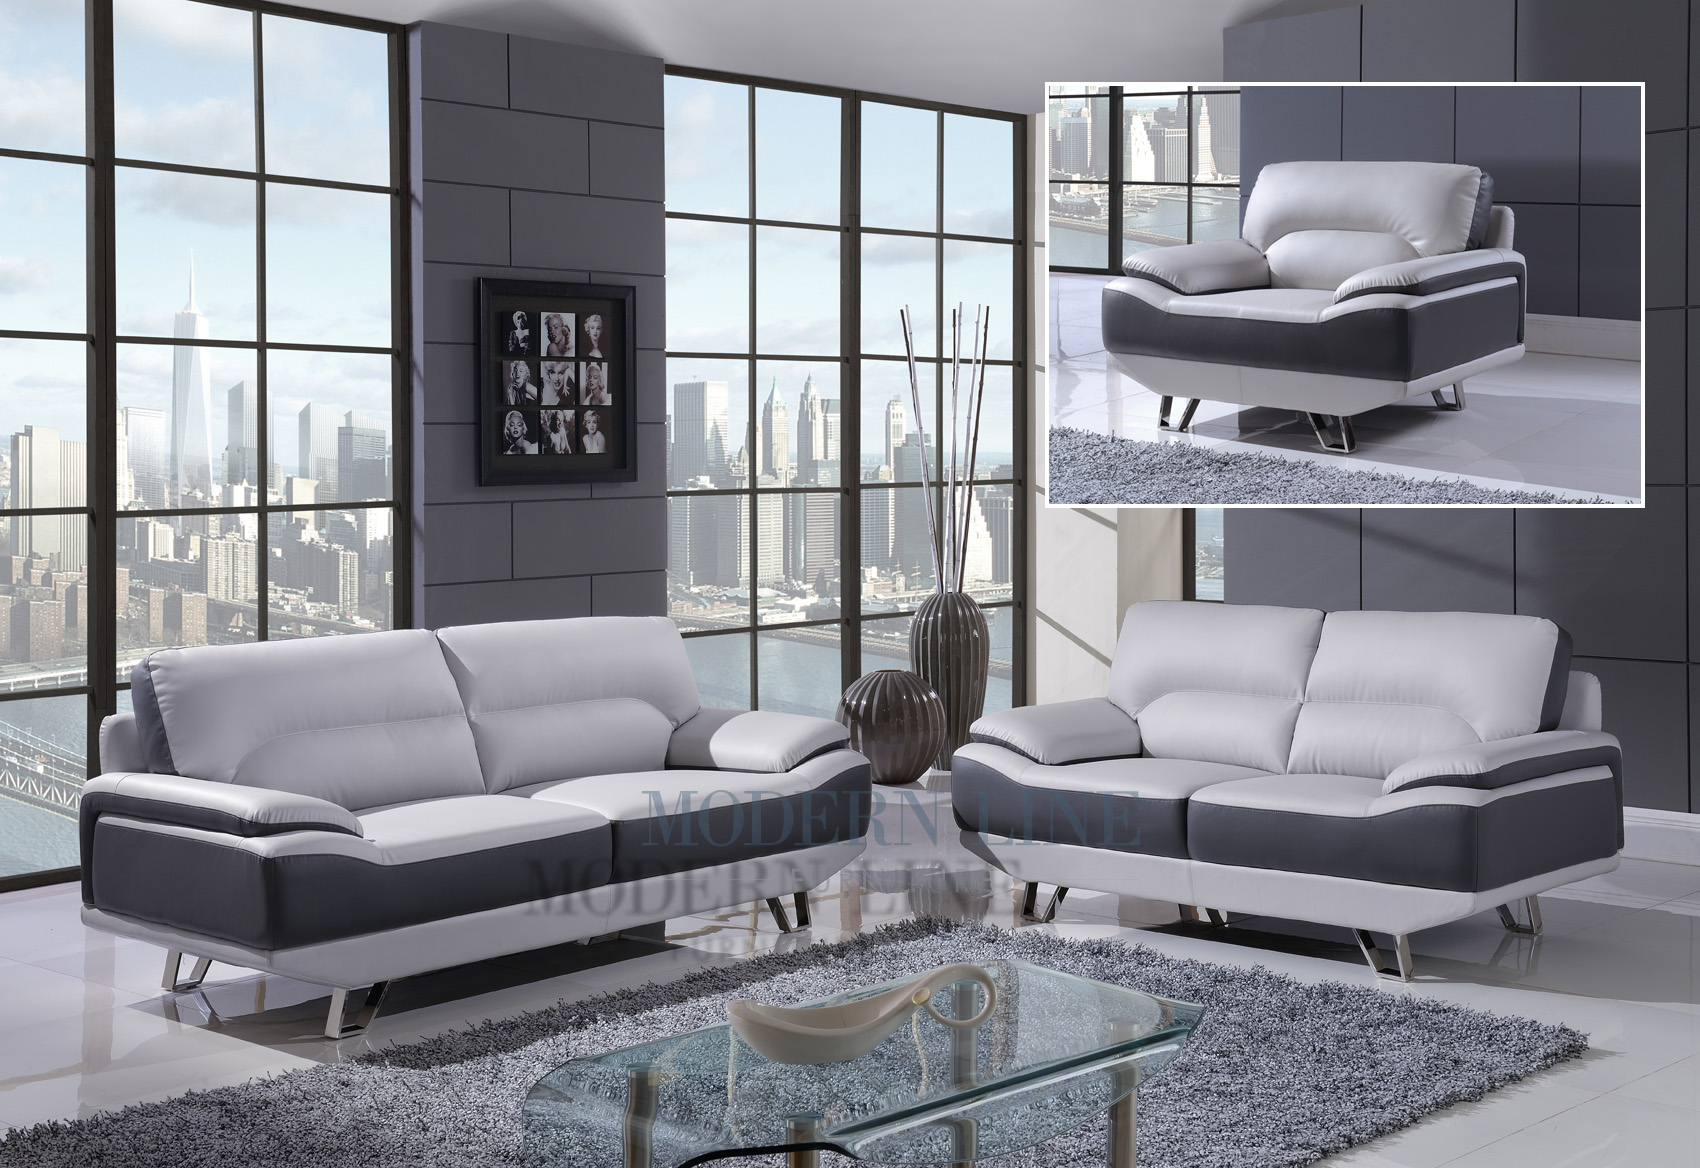 Modern Line Furniture   Commercial Furniture   Custom Made Furniture |  Modern Dual Tone   Light Grey U0026 Dark Grey   Leather Living Room Set; Sofa,  ...